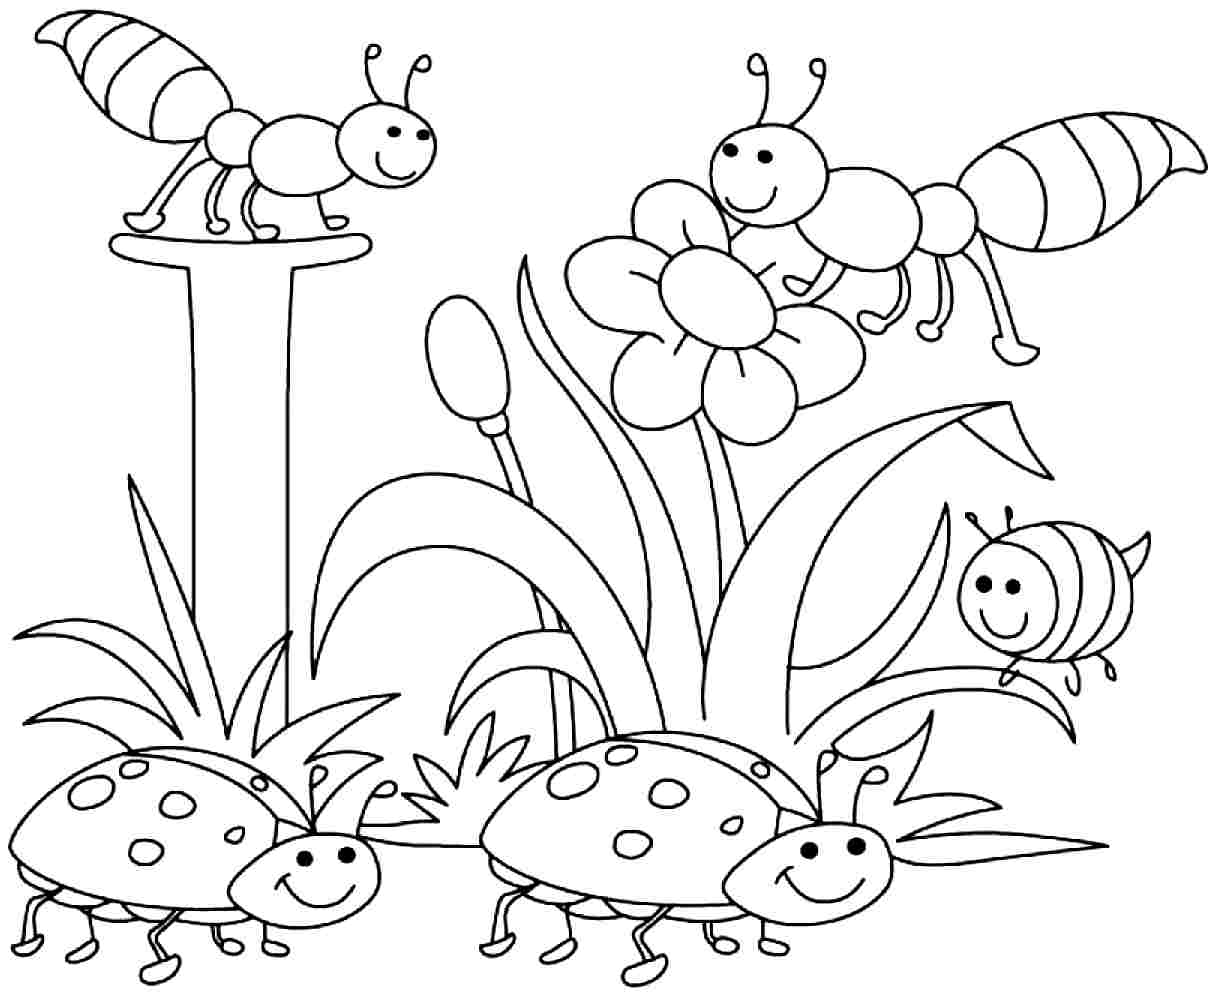 Free Coloring Pages Free For Kids Spring Time Download